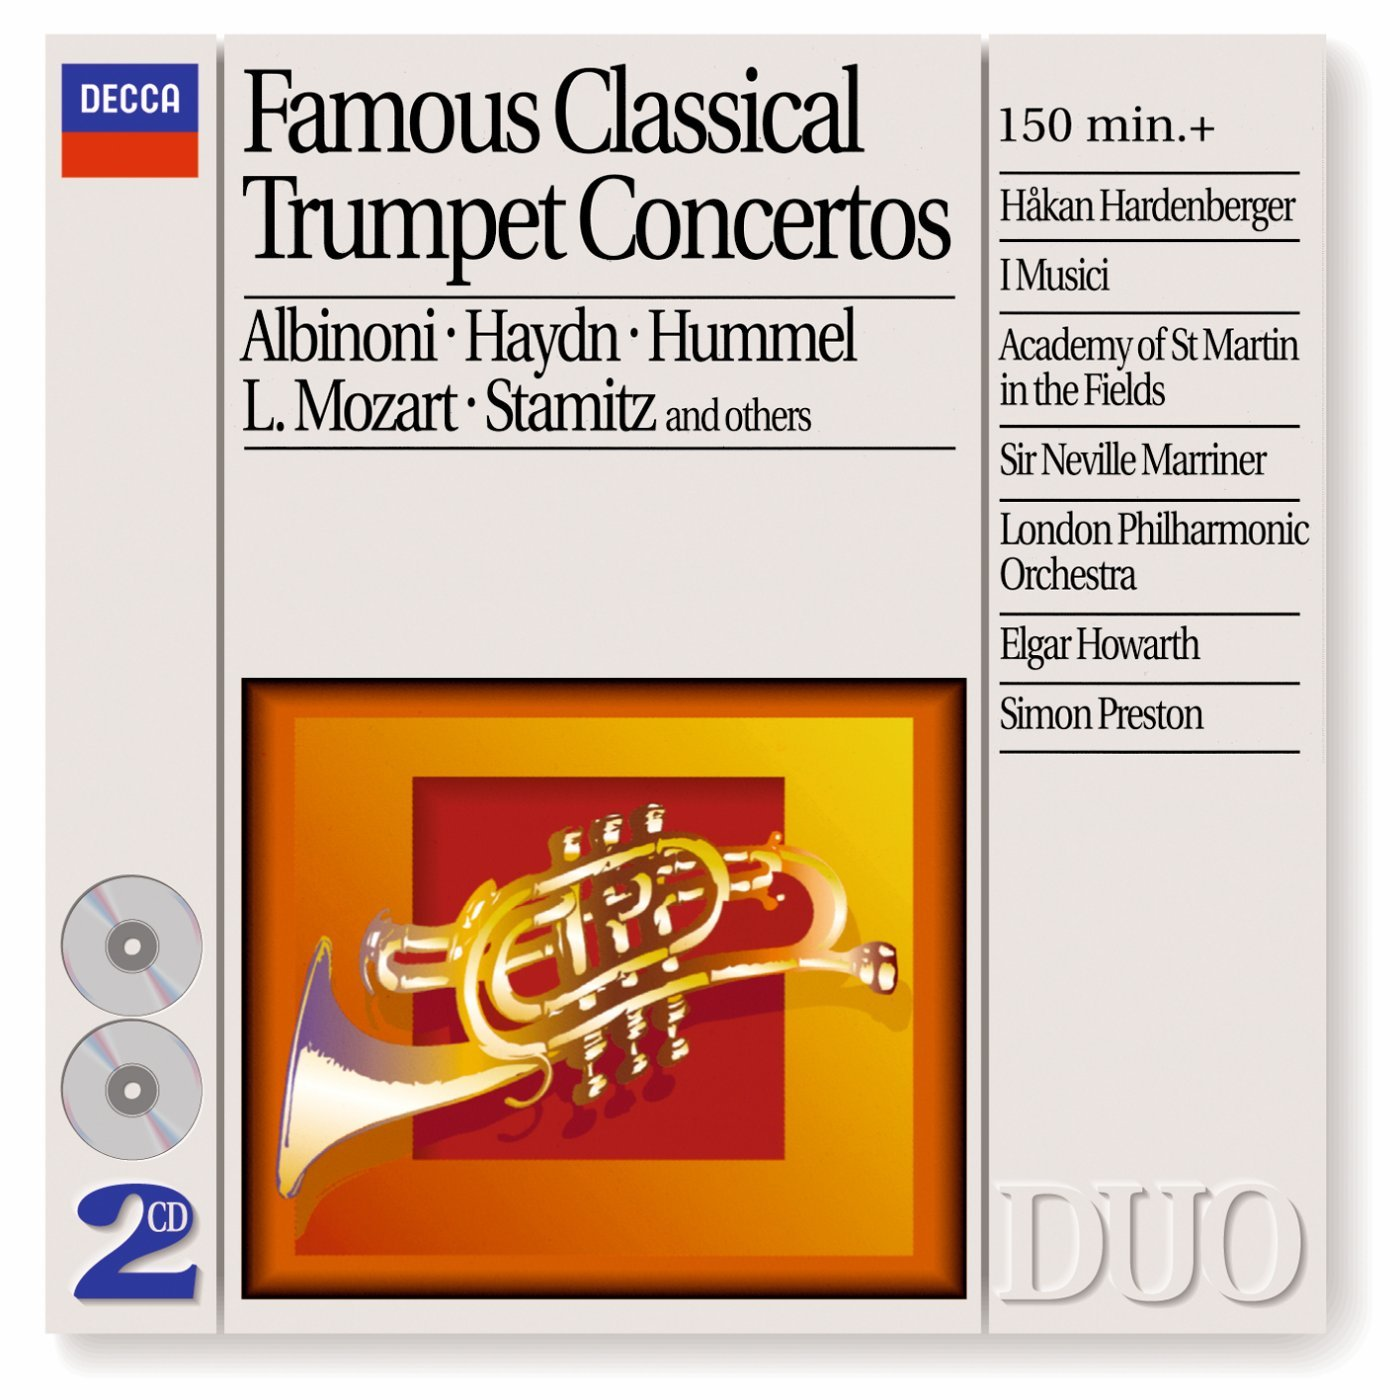 Famous Classical Trumpet Concertos by Remo